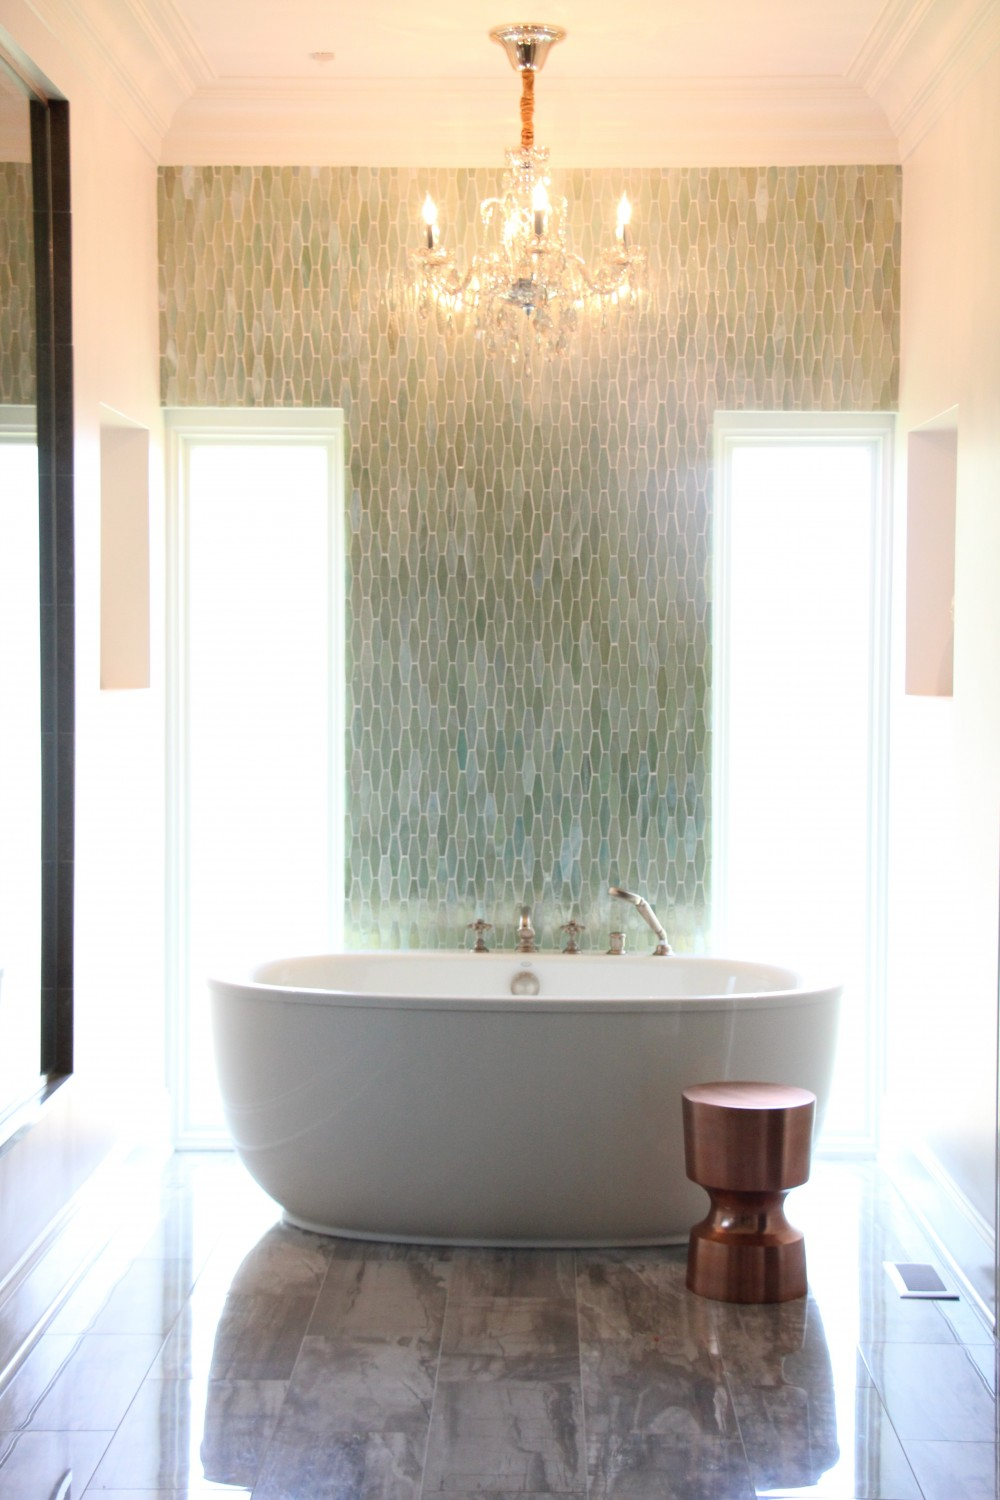 BATHROOM INTERIOR DESIGN BLOGS